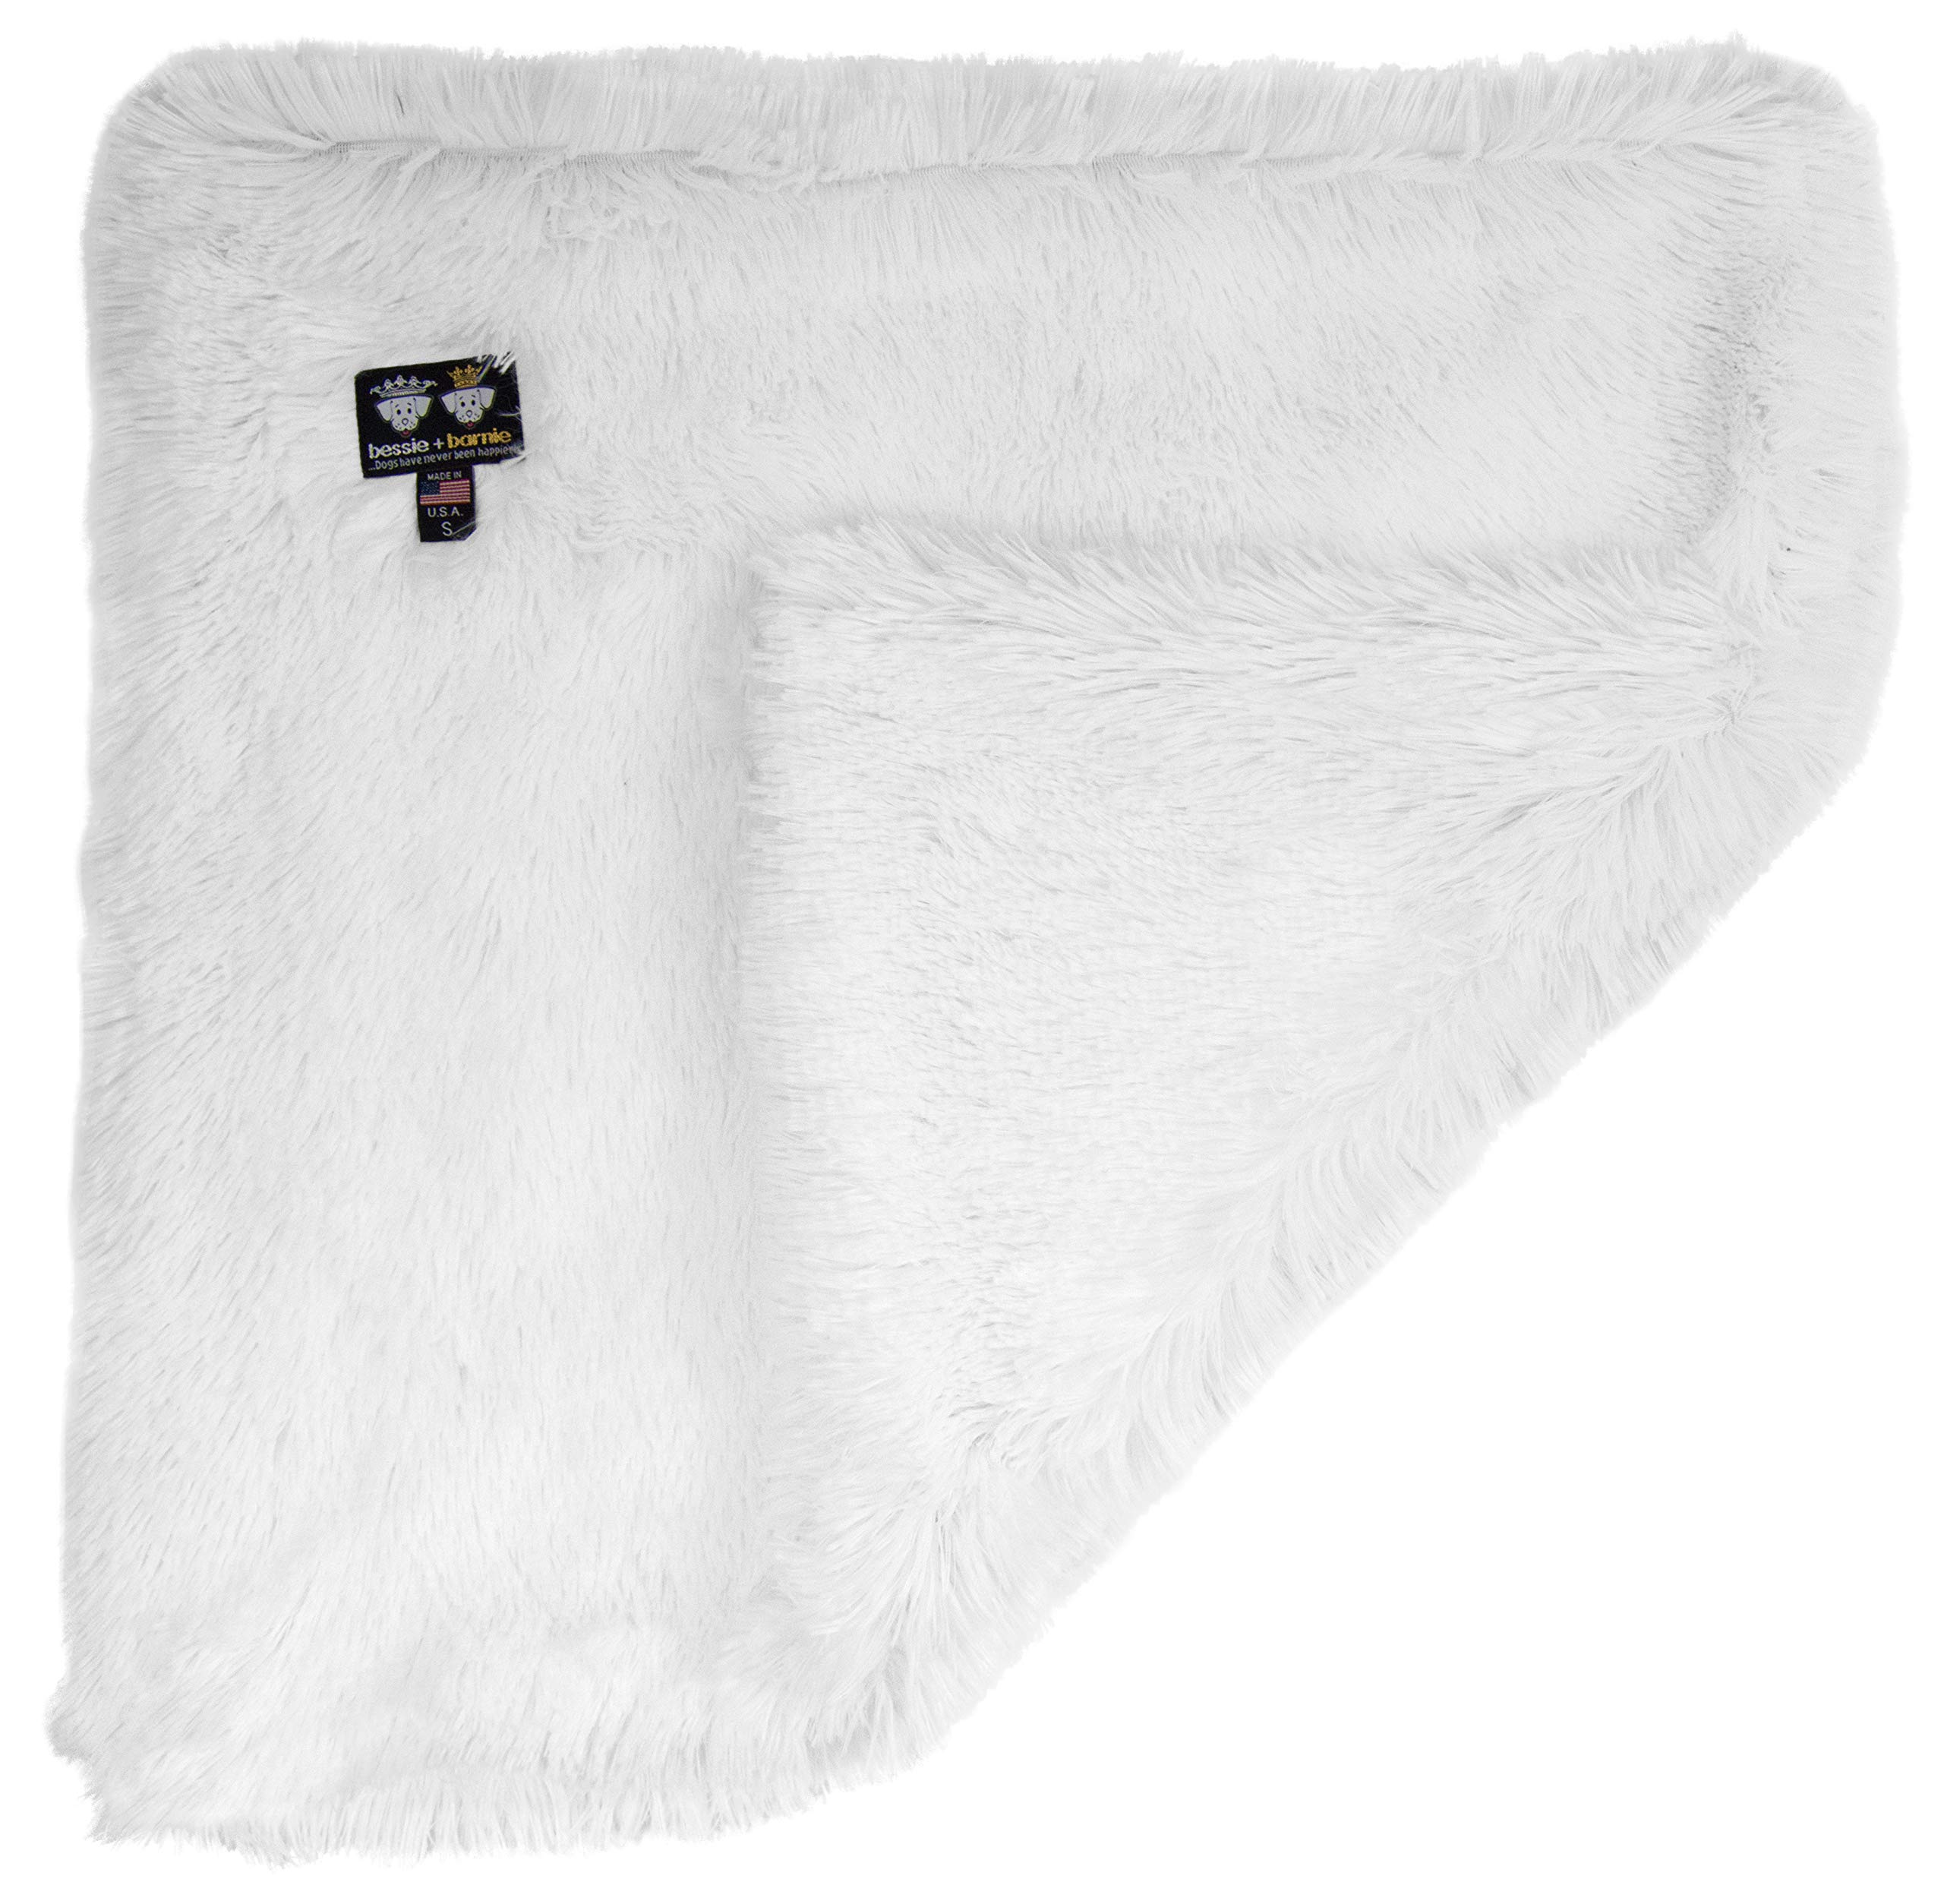 Bessie and Barnie Snow White Luxury Shag Ultra Plush Faux Fur Pet, Dog, Cat, Puppy Super Soft Reversible Blanket…